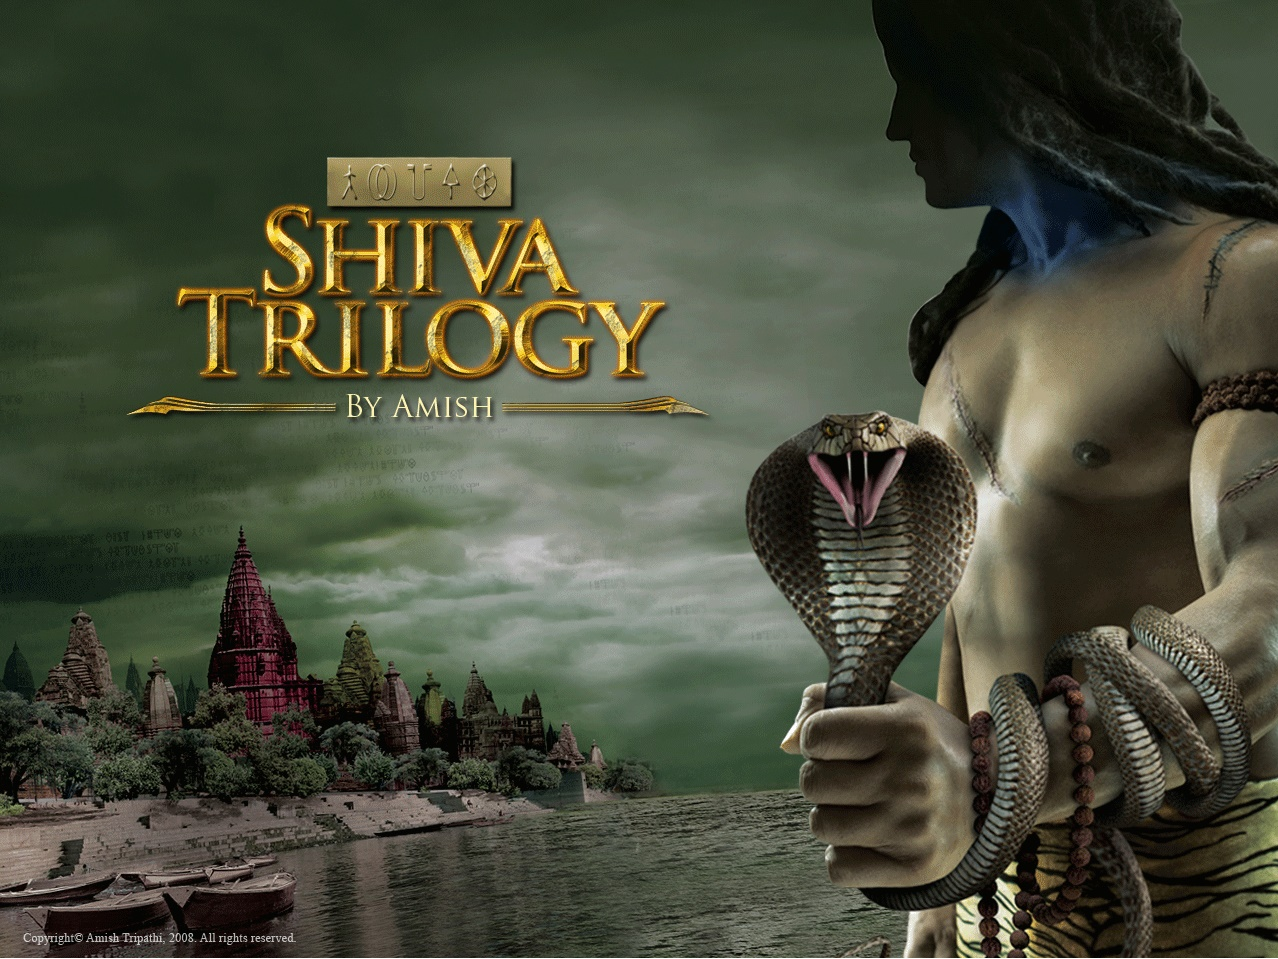 Amish Tripathi, Shiva Trilogy, Mumbai, Banaras, Religion, Writer